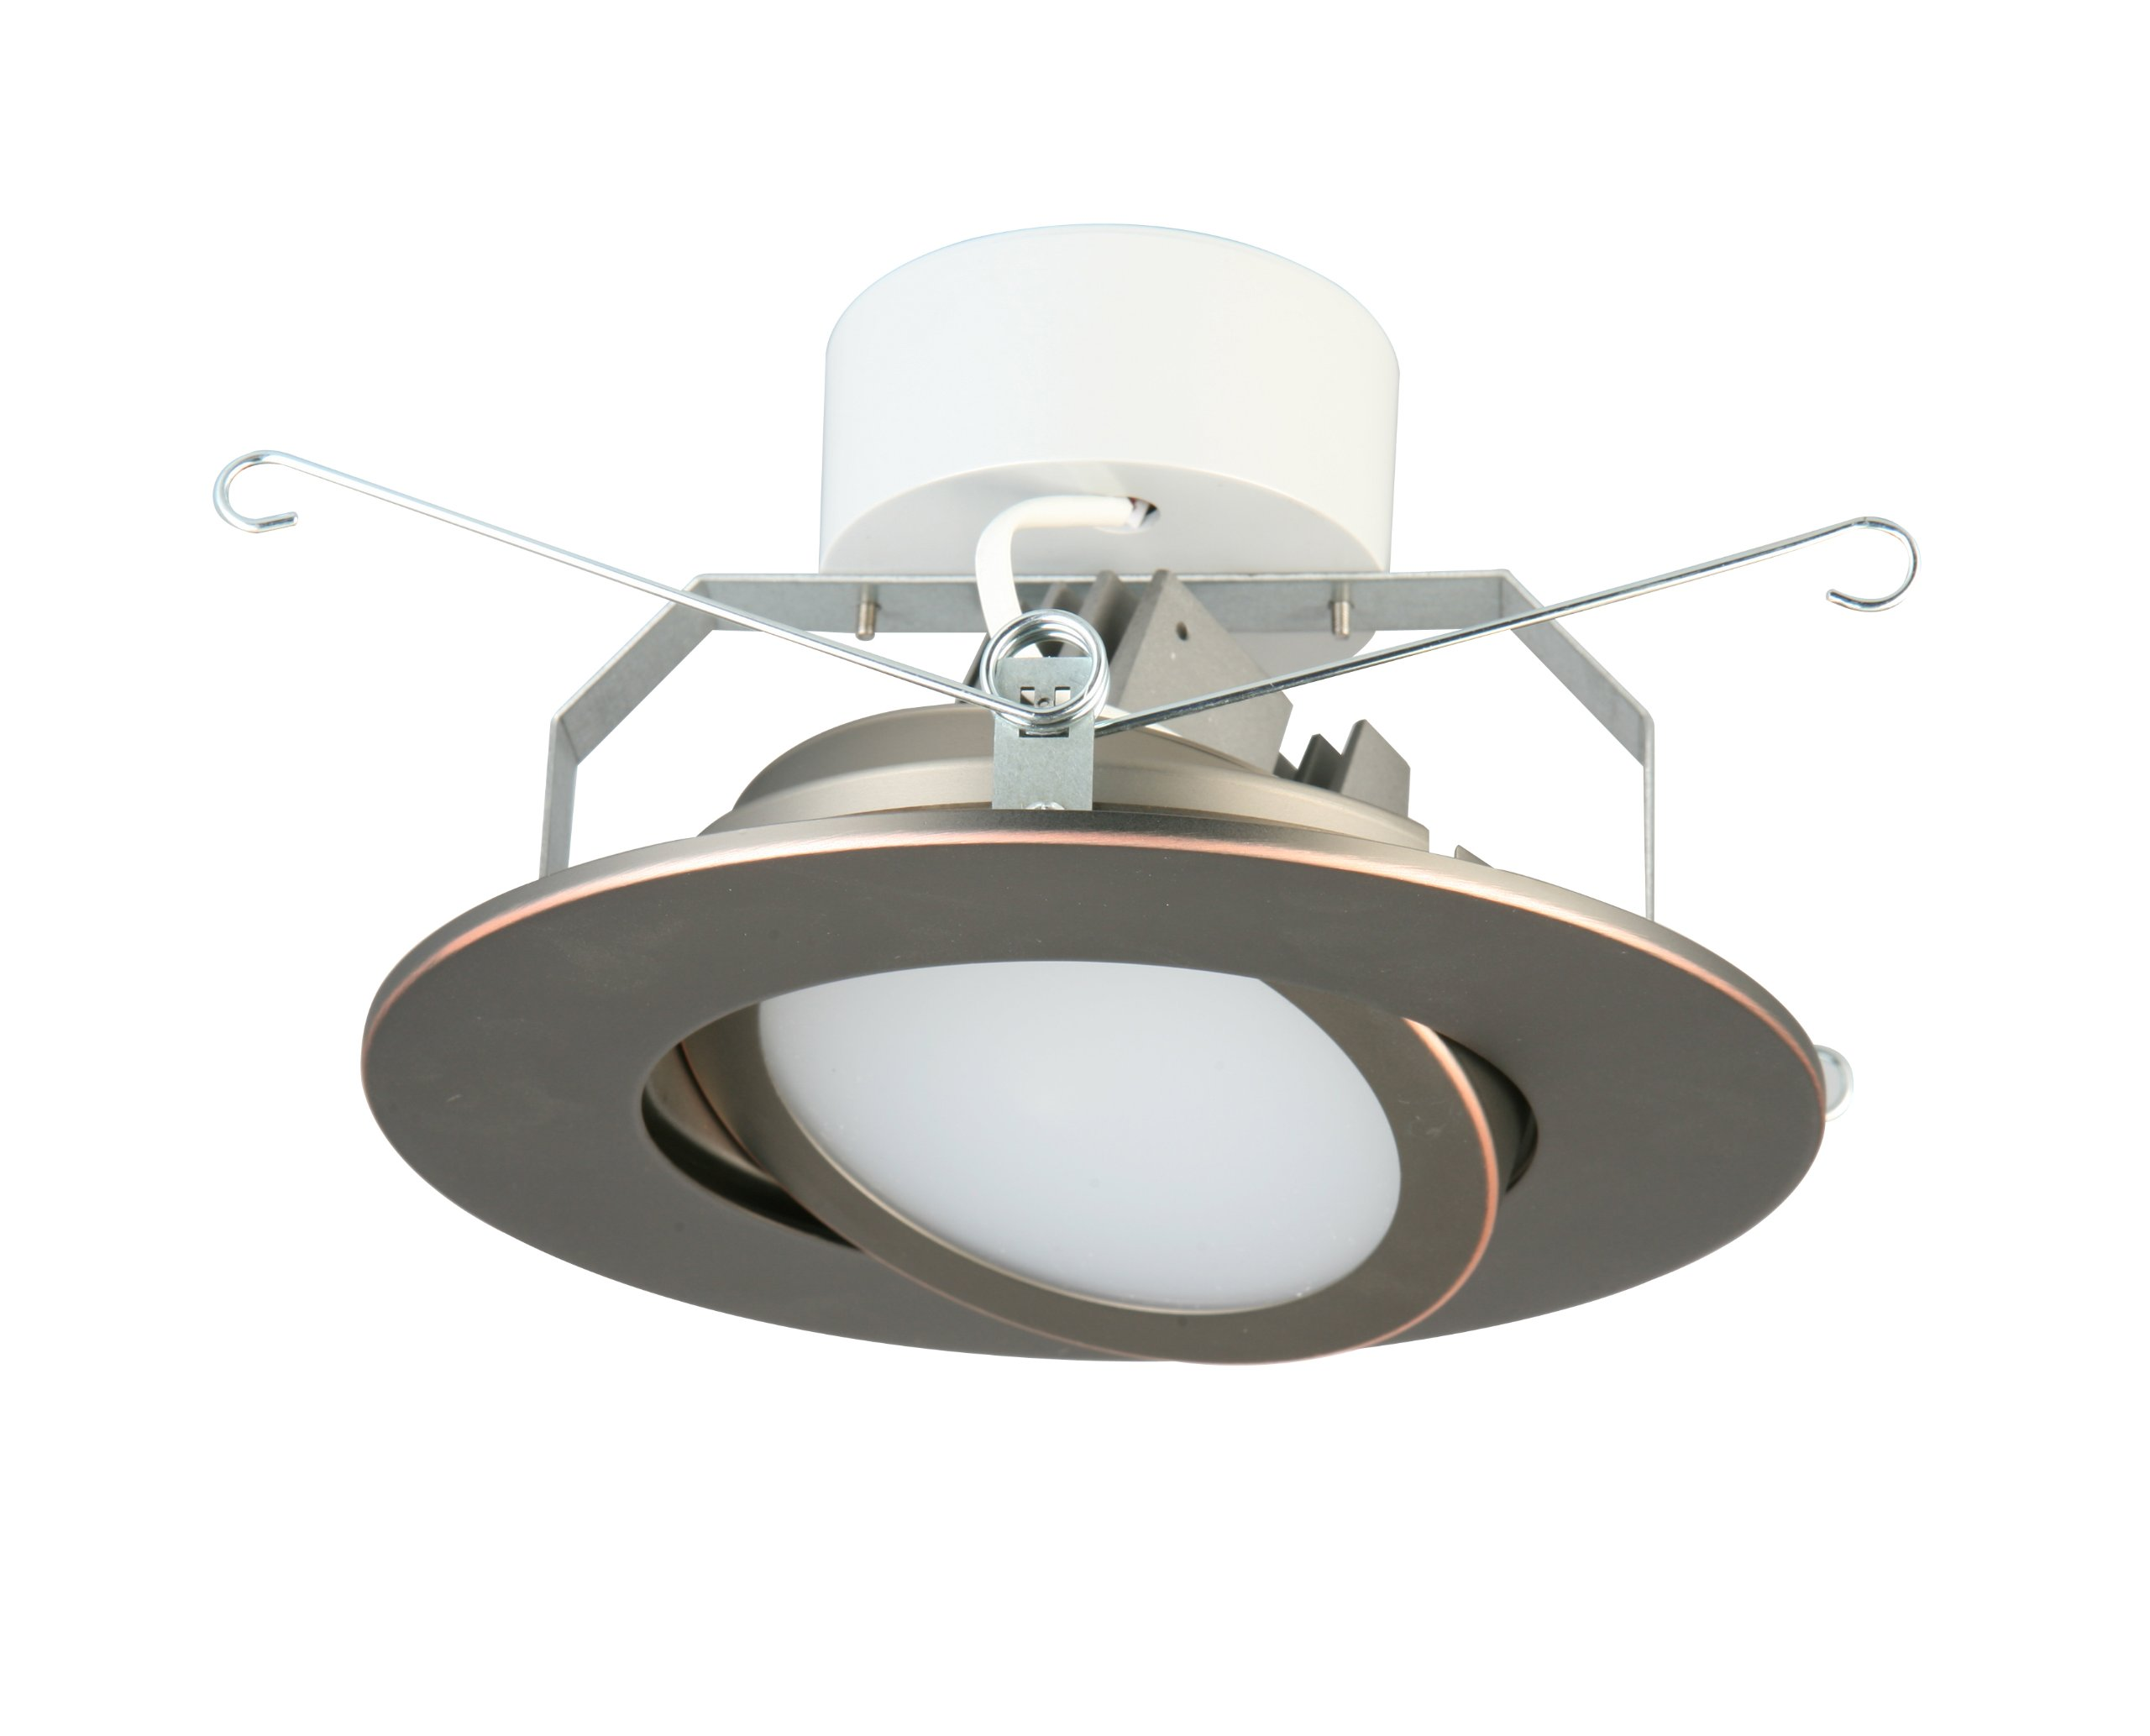 Lithonia Lighting Lithonia 6G1ORB LED M6 6-Inch Oil-Rubbed Bronze LED Gimbal Module